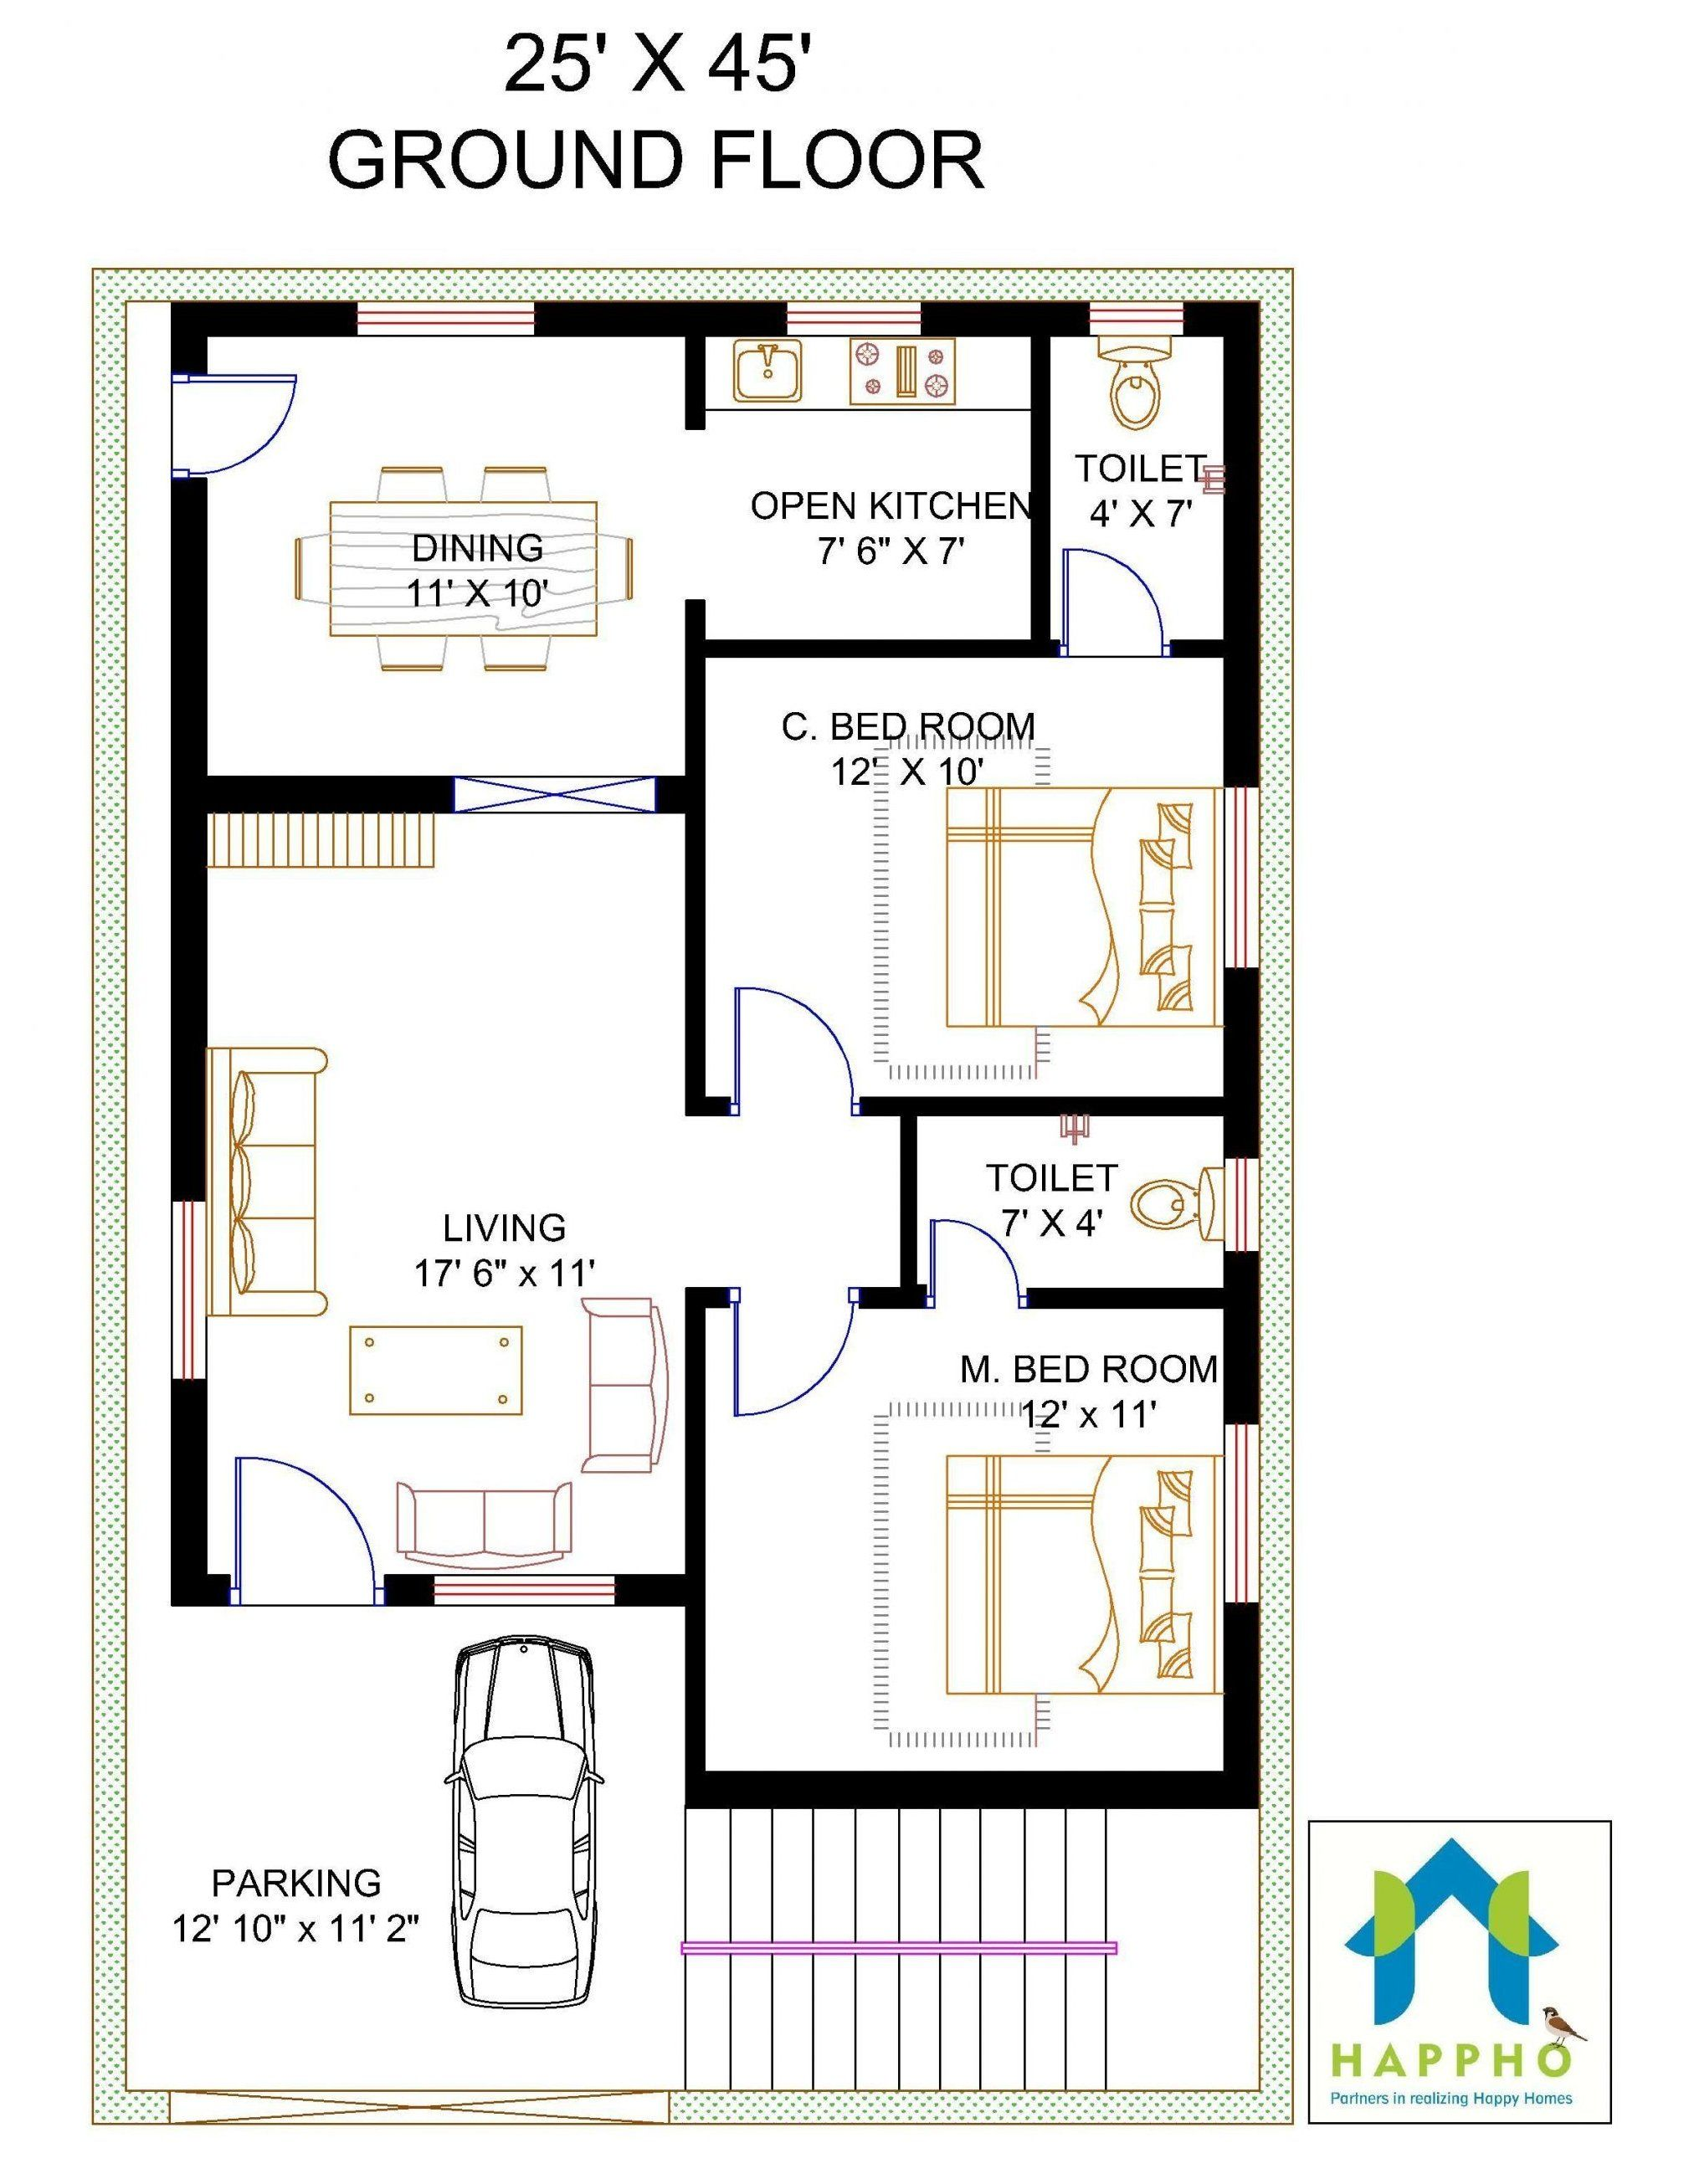 Two Bedroom House Plan Designs 2021 Simple House Plans Indian Simplehouseplansindian Bedroom House Plans 2 Bedroom House Plans 2bhk House Plan